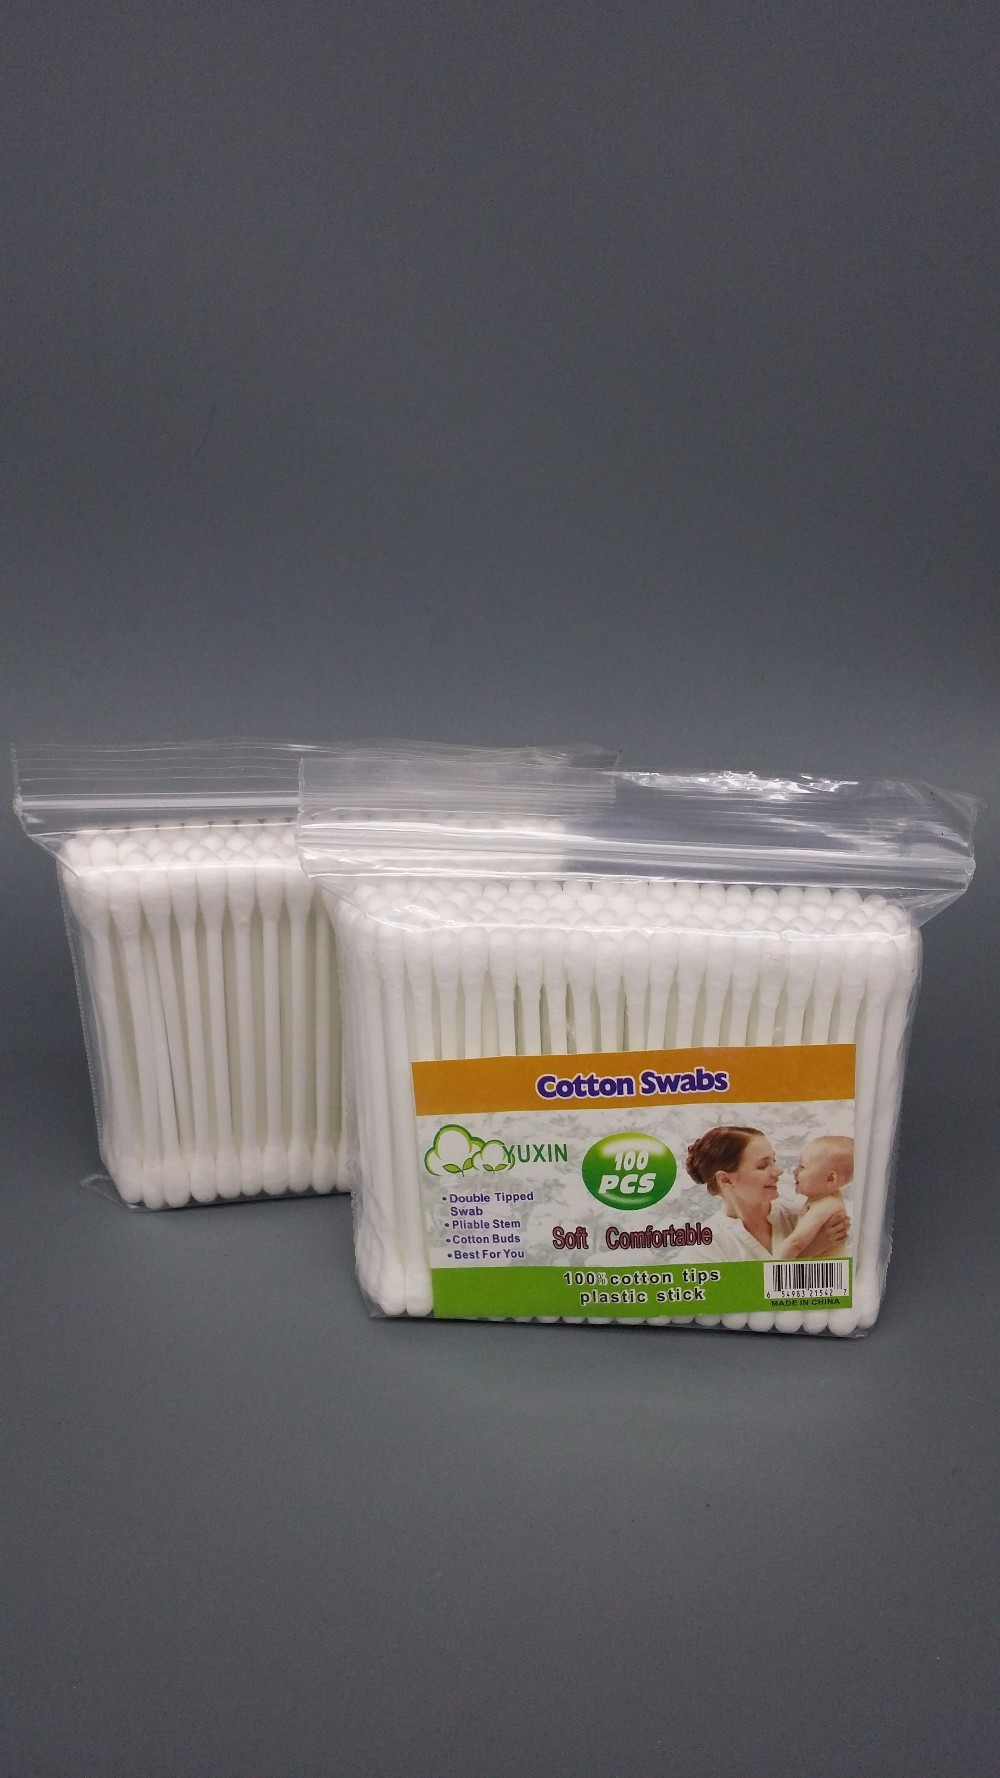 House Hold Cotton Swabs For Ear Cleaning 100pcs Poly Bag